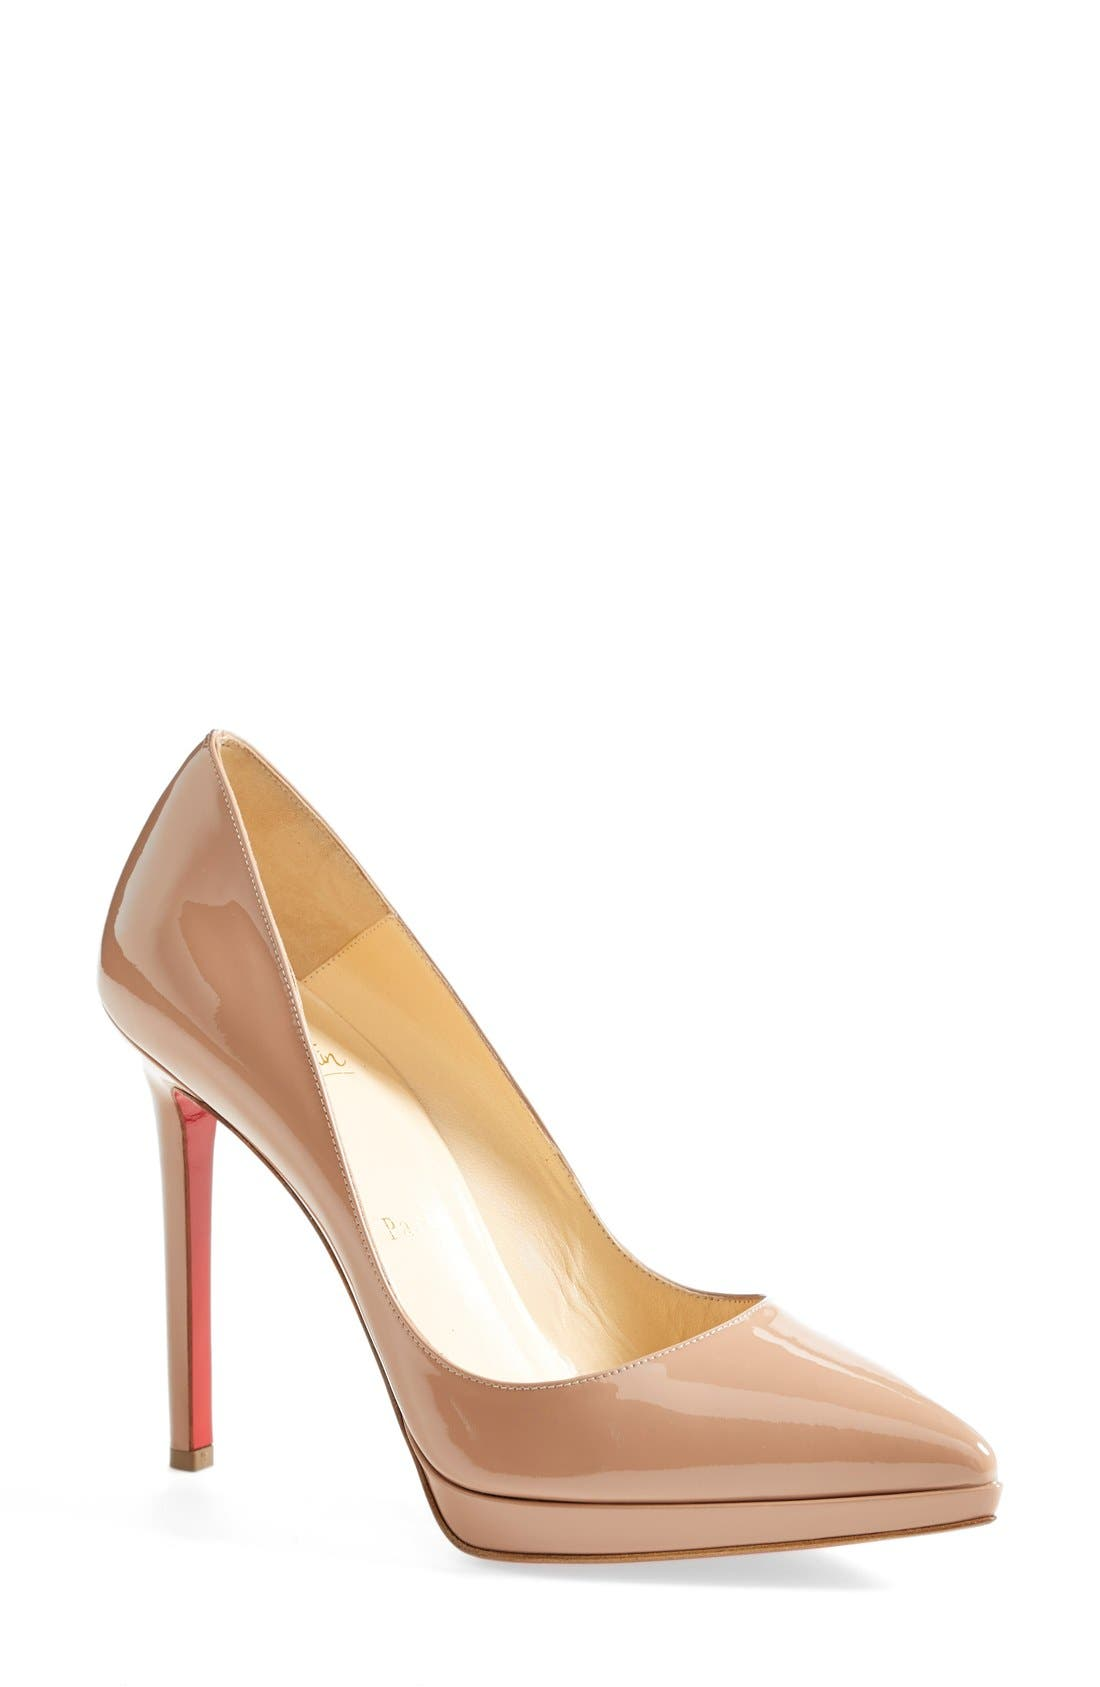 'Pigalle Plato' Pointy Toe Pump,                             Main thumbnail 2, color,